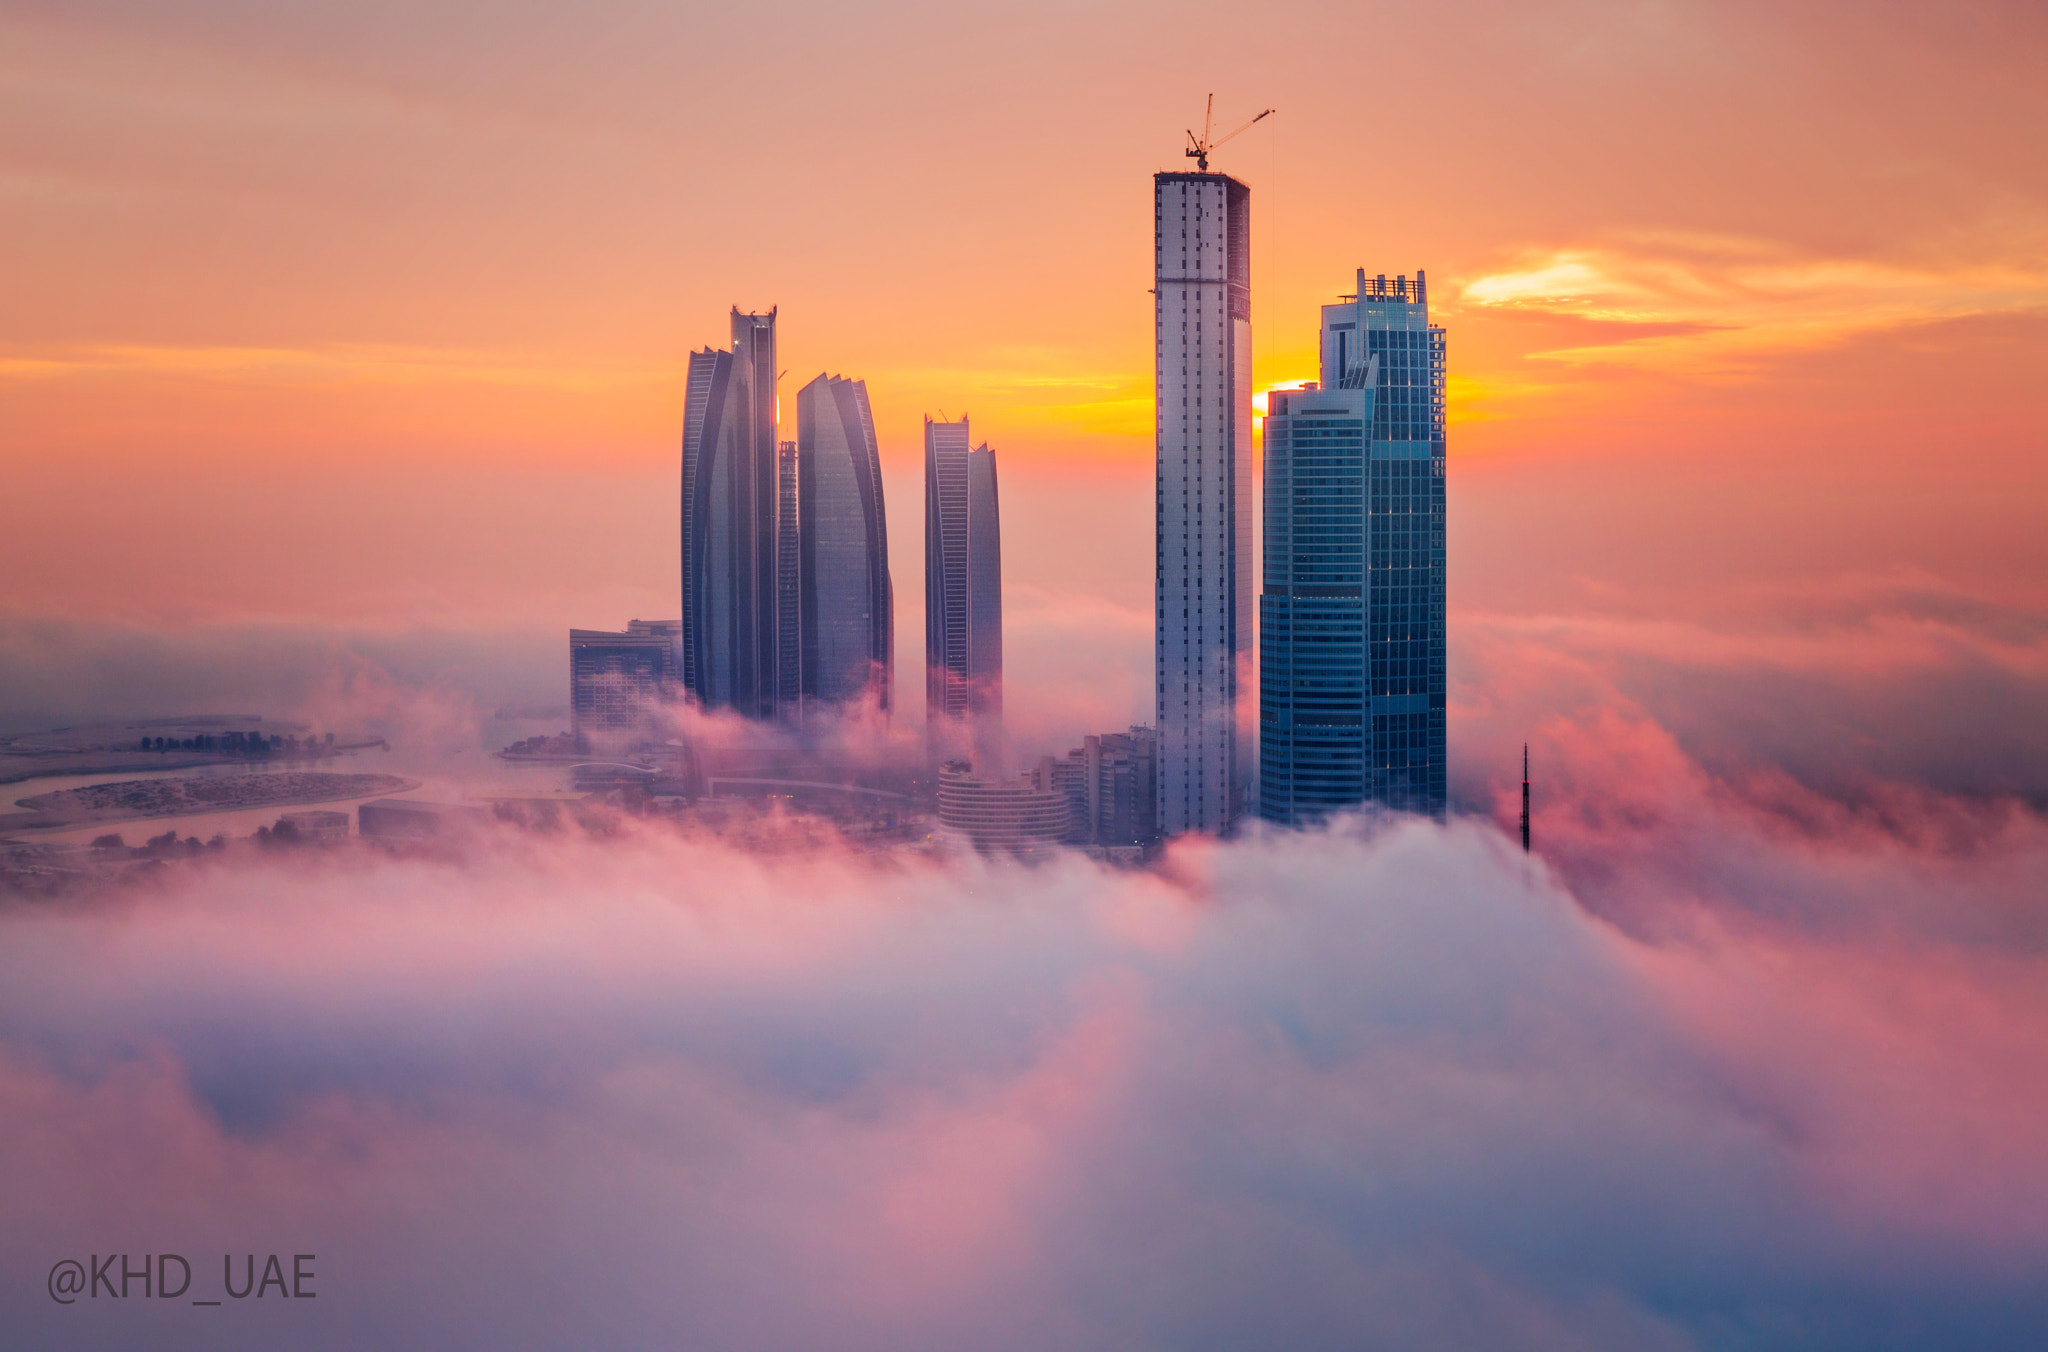 Photograph Cloudy Towers by Khalid Al Hammadi on 500px